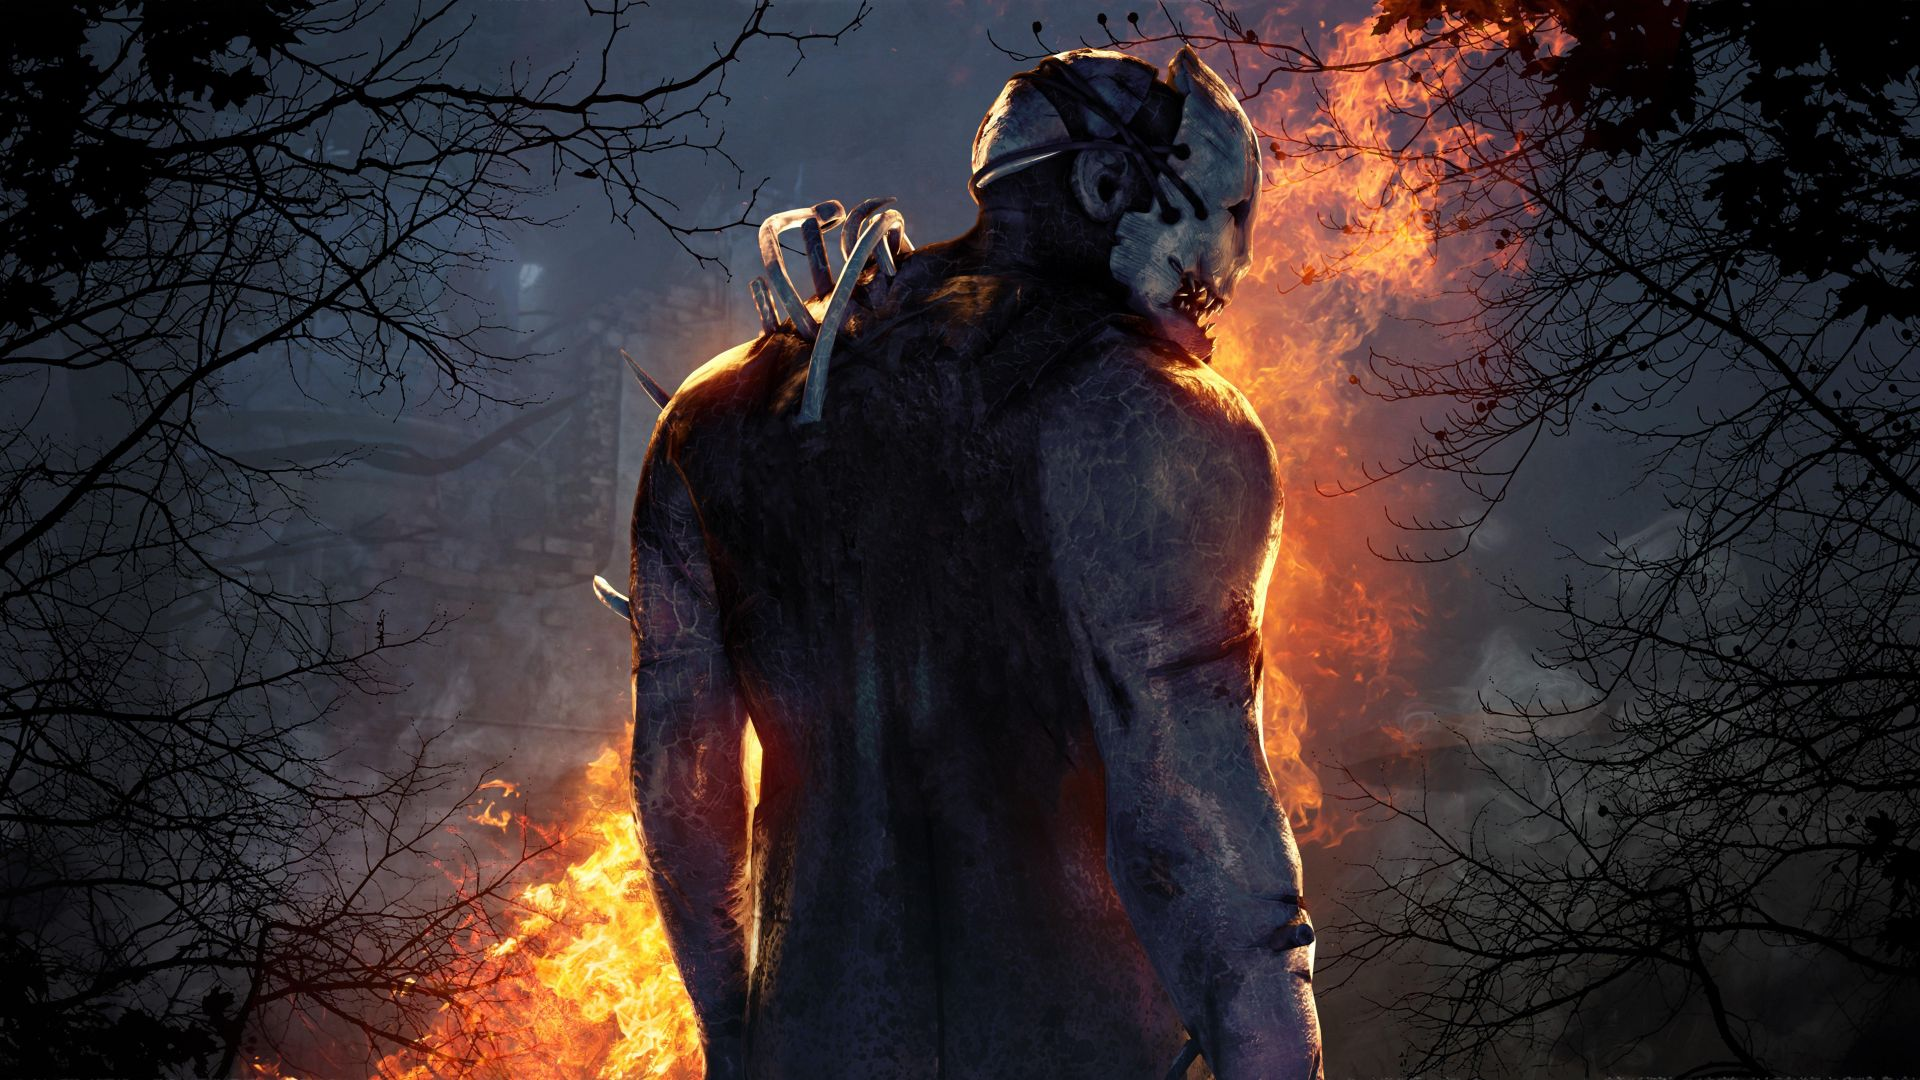 Dead by Daylight, Trapper, best games, PC, PS 4, Xbox One (horizontal)